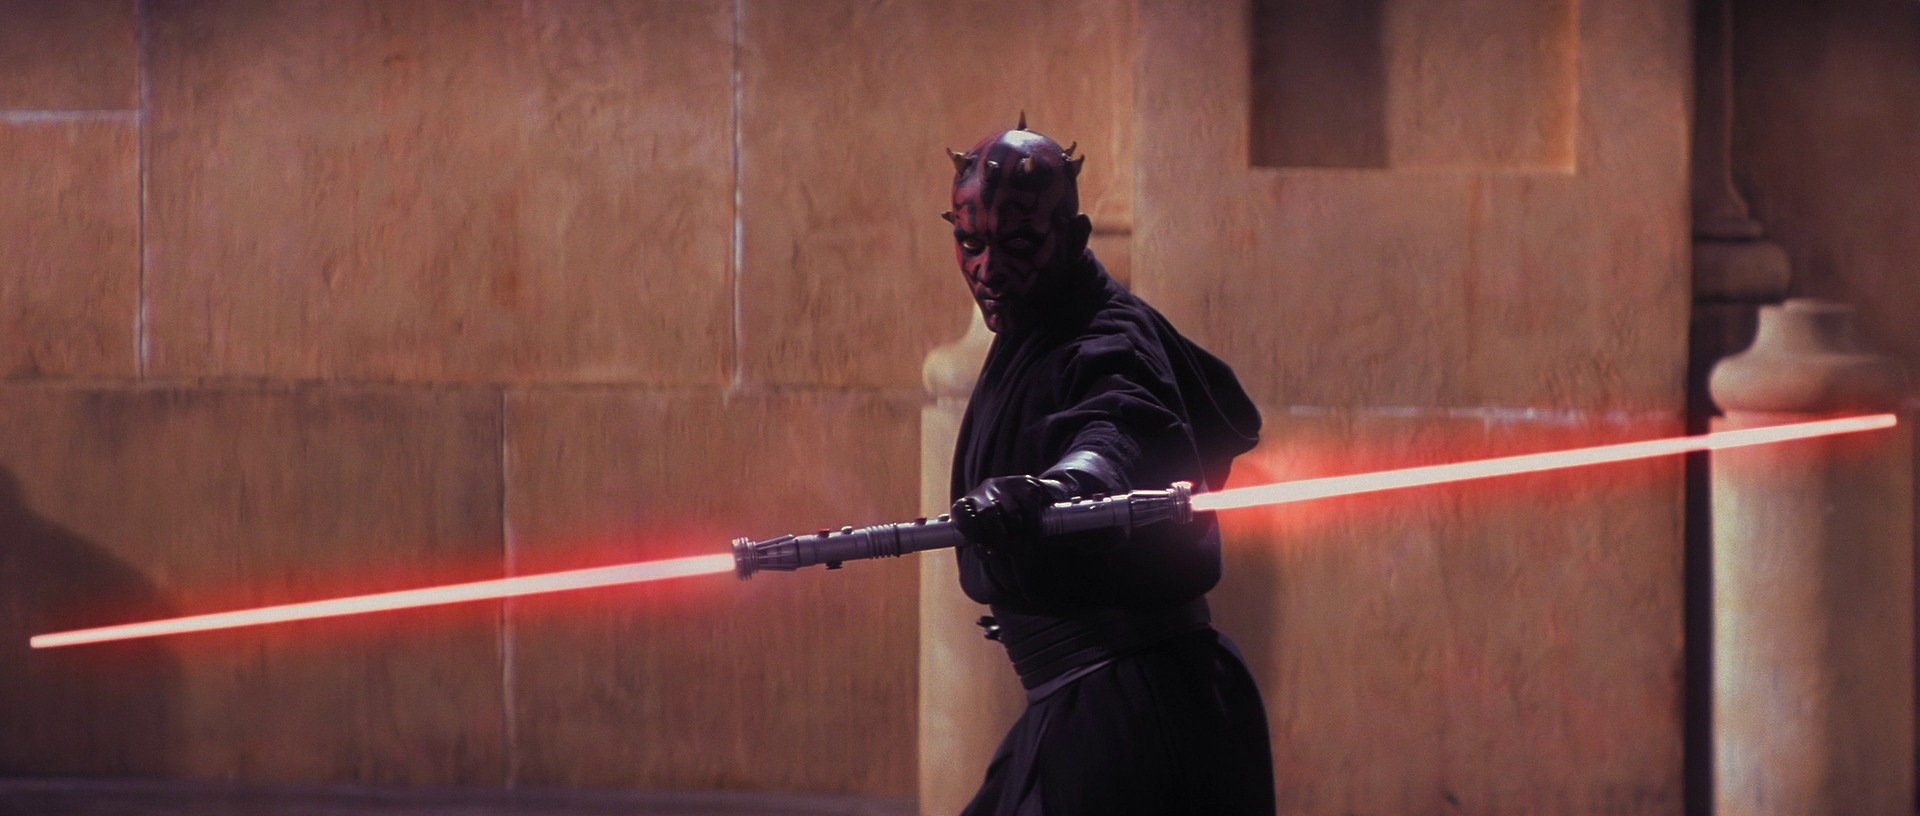 The phantom menace darth maul double bladed lightsaber 1920x816